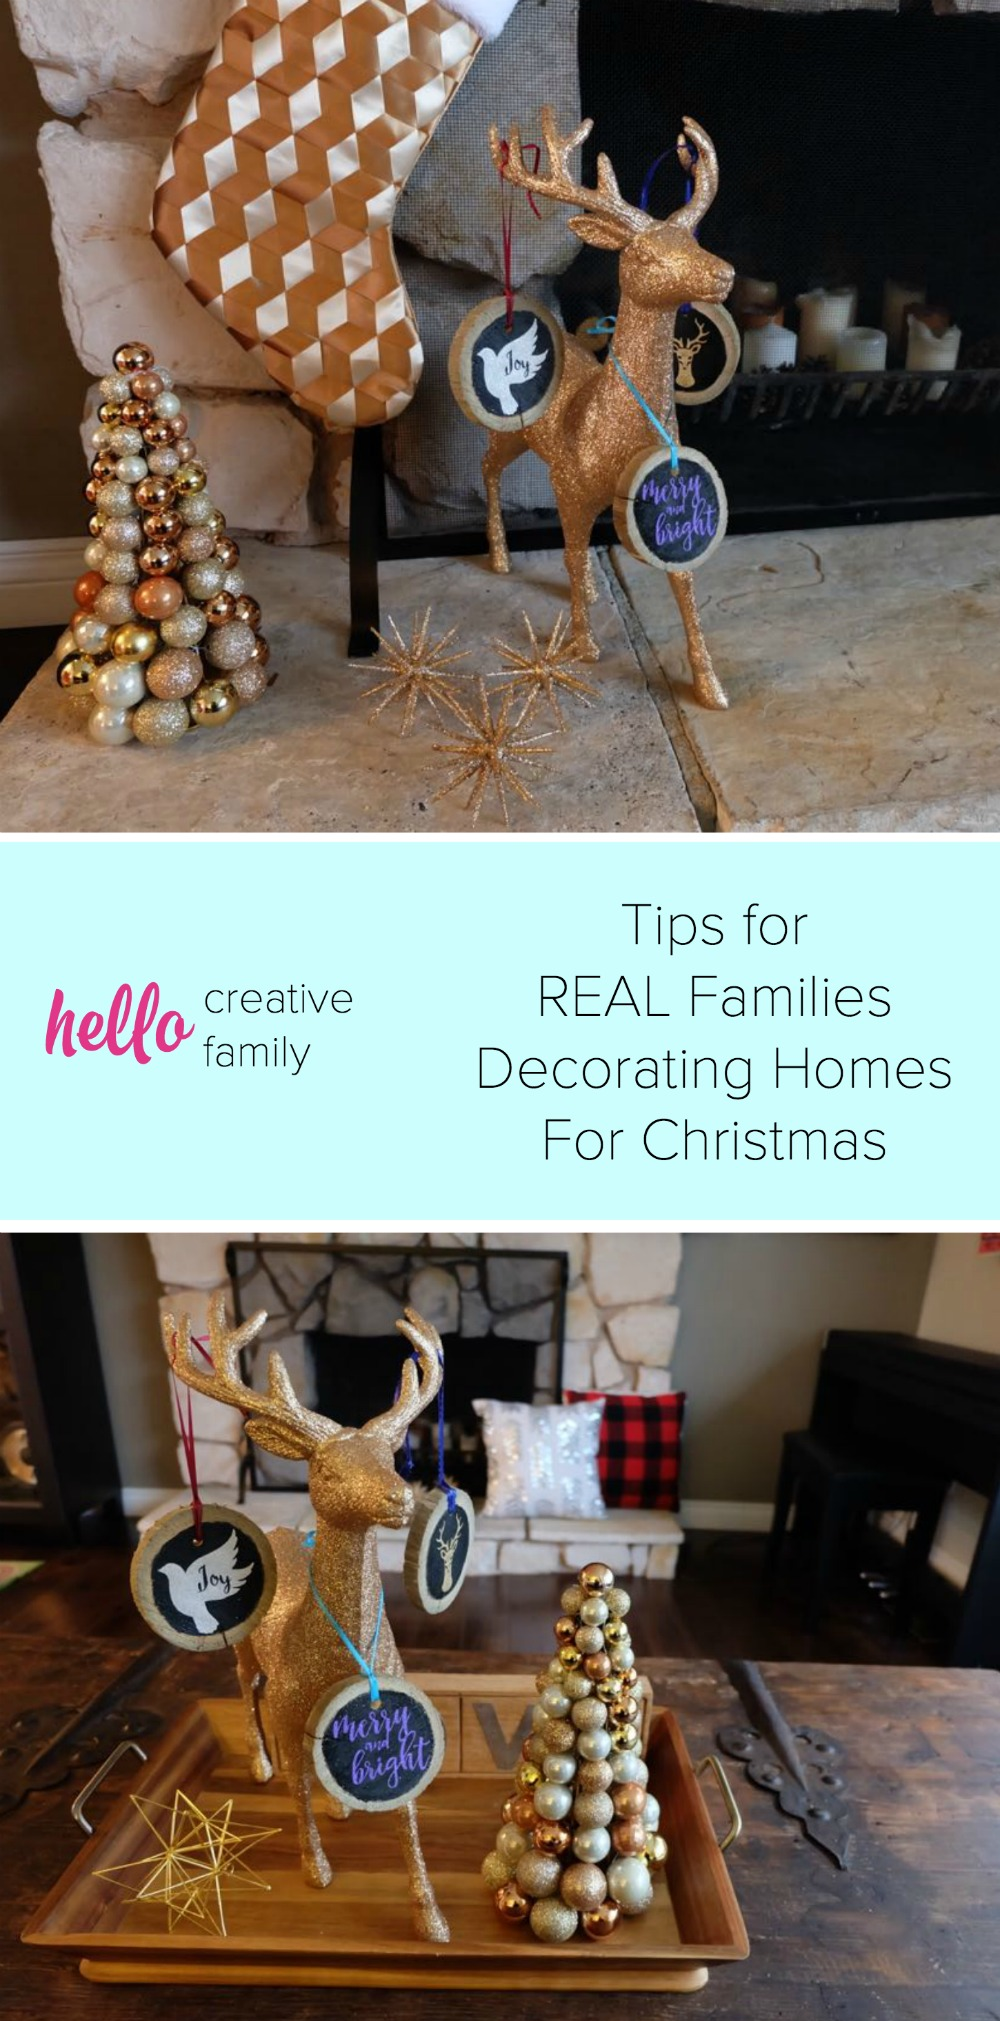 It's about to get real! My Home Confession Plus Tips for REAL Families for Decorating Their Home For Christmas- Kids, Messes, Life and All!